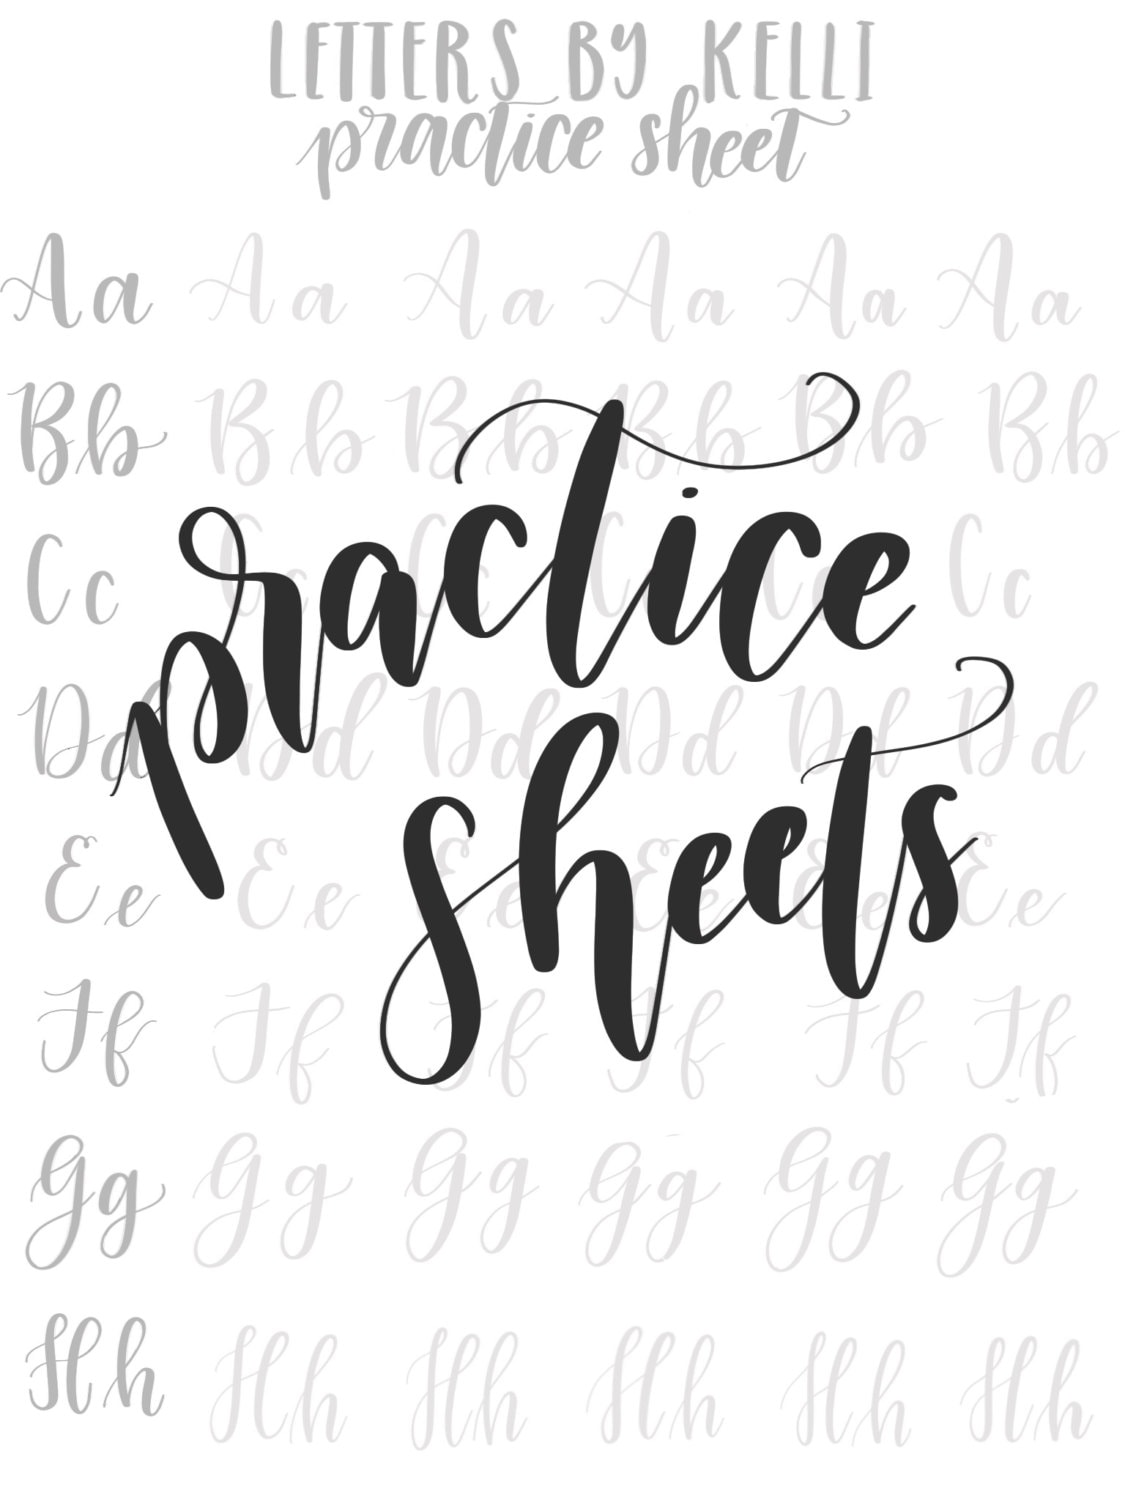 It's just an image of Smart Printable Hand Lettering Practice Sheets